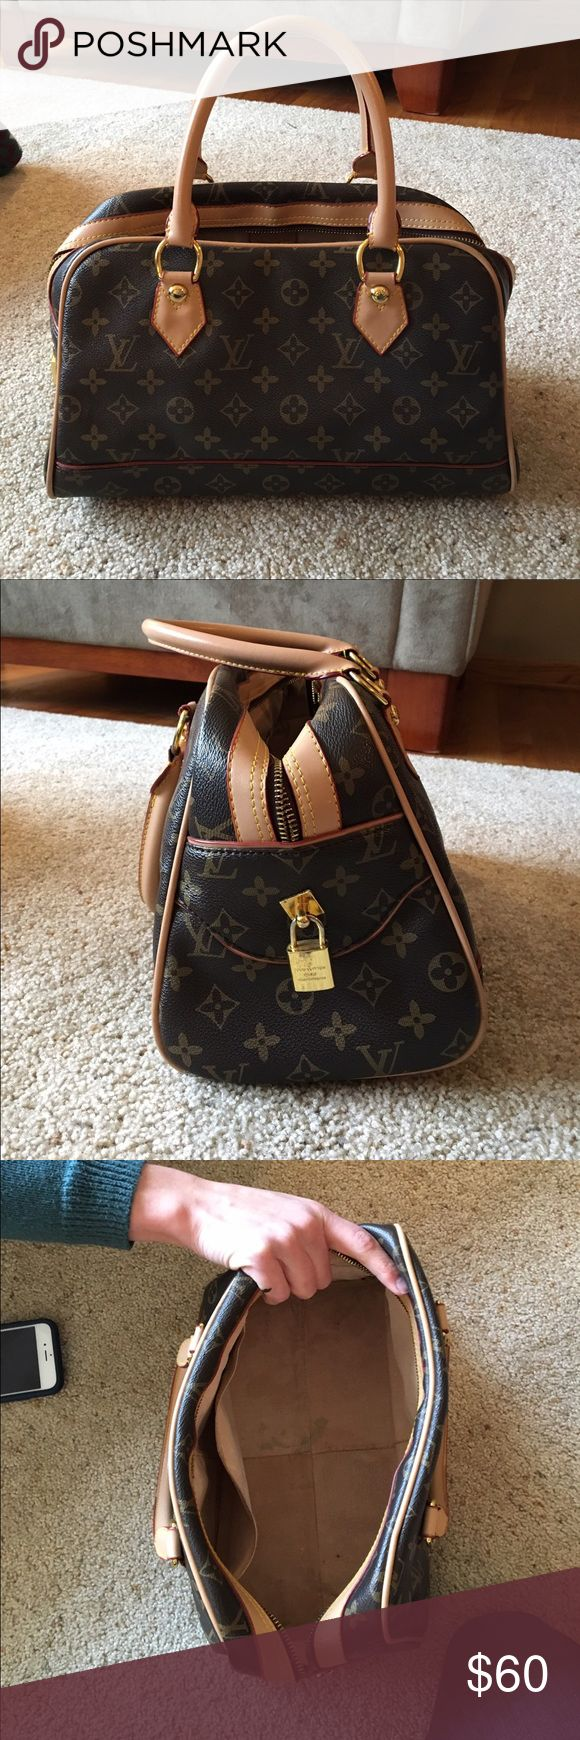 FAKE Louis Vuitton purse Very cute small handbag. PRICE IS VERY FLEXIBLE!! I'm no expert but 99.9% sure this is not the real thing. Has been used a few times. Up close it has a few blemishes as seen in pictures but looks great otherwise. fake louis vuitton Bags Totes